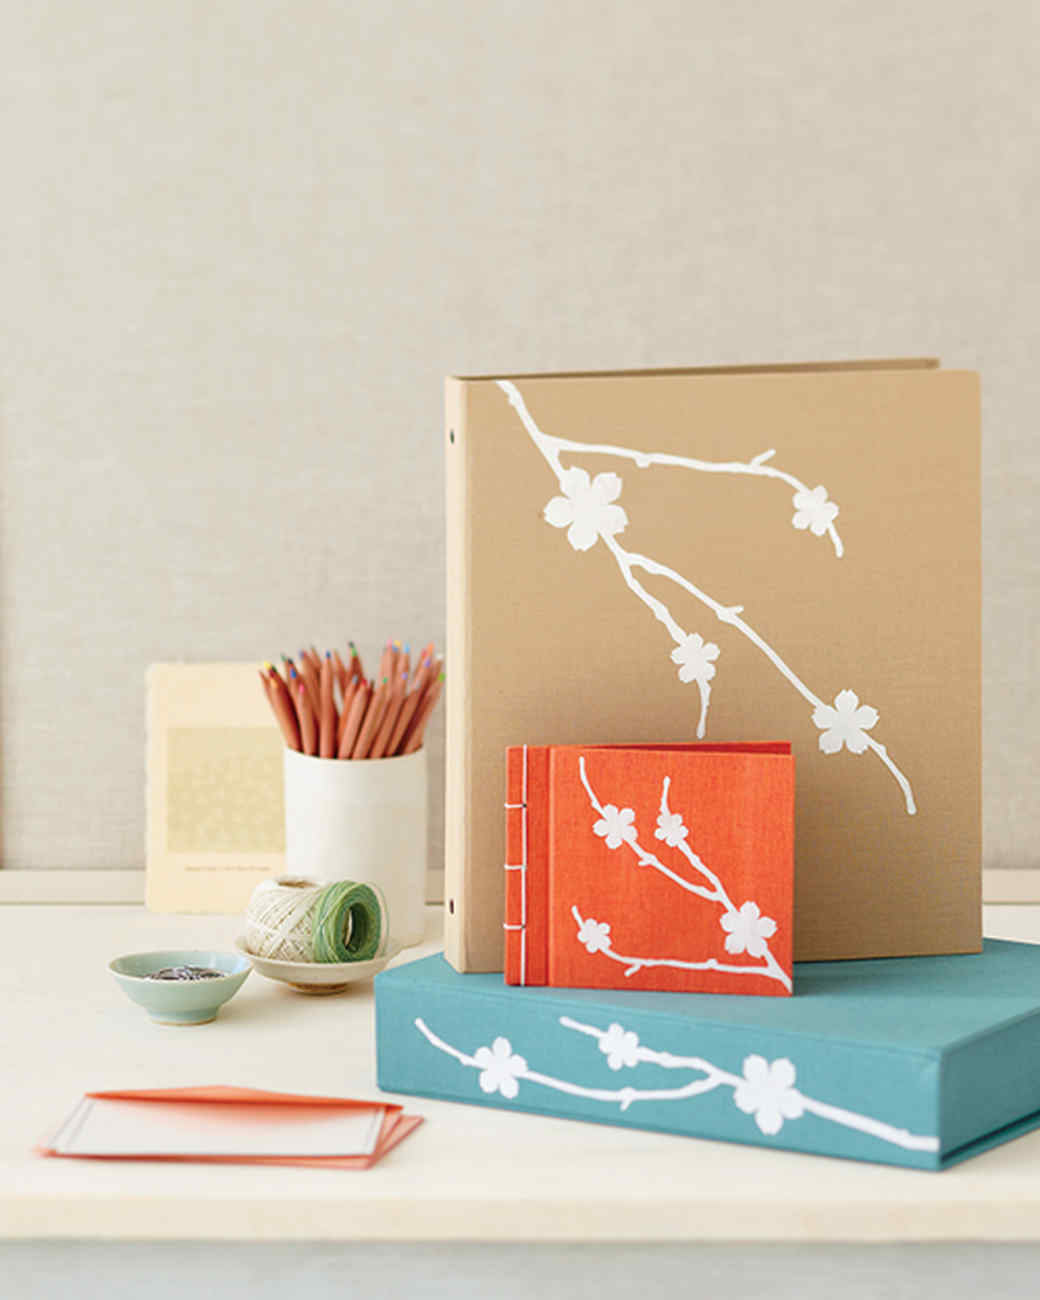 35 Great Scrapbook Ideas and Albums